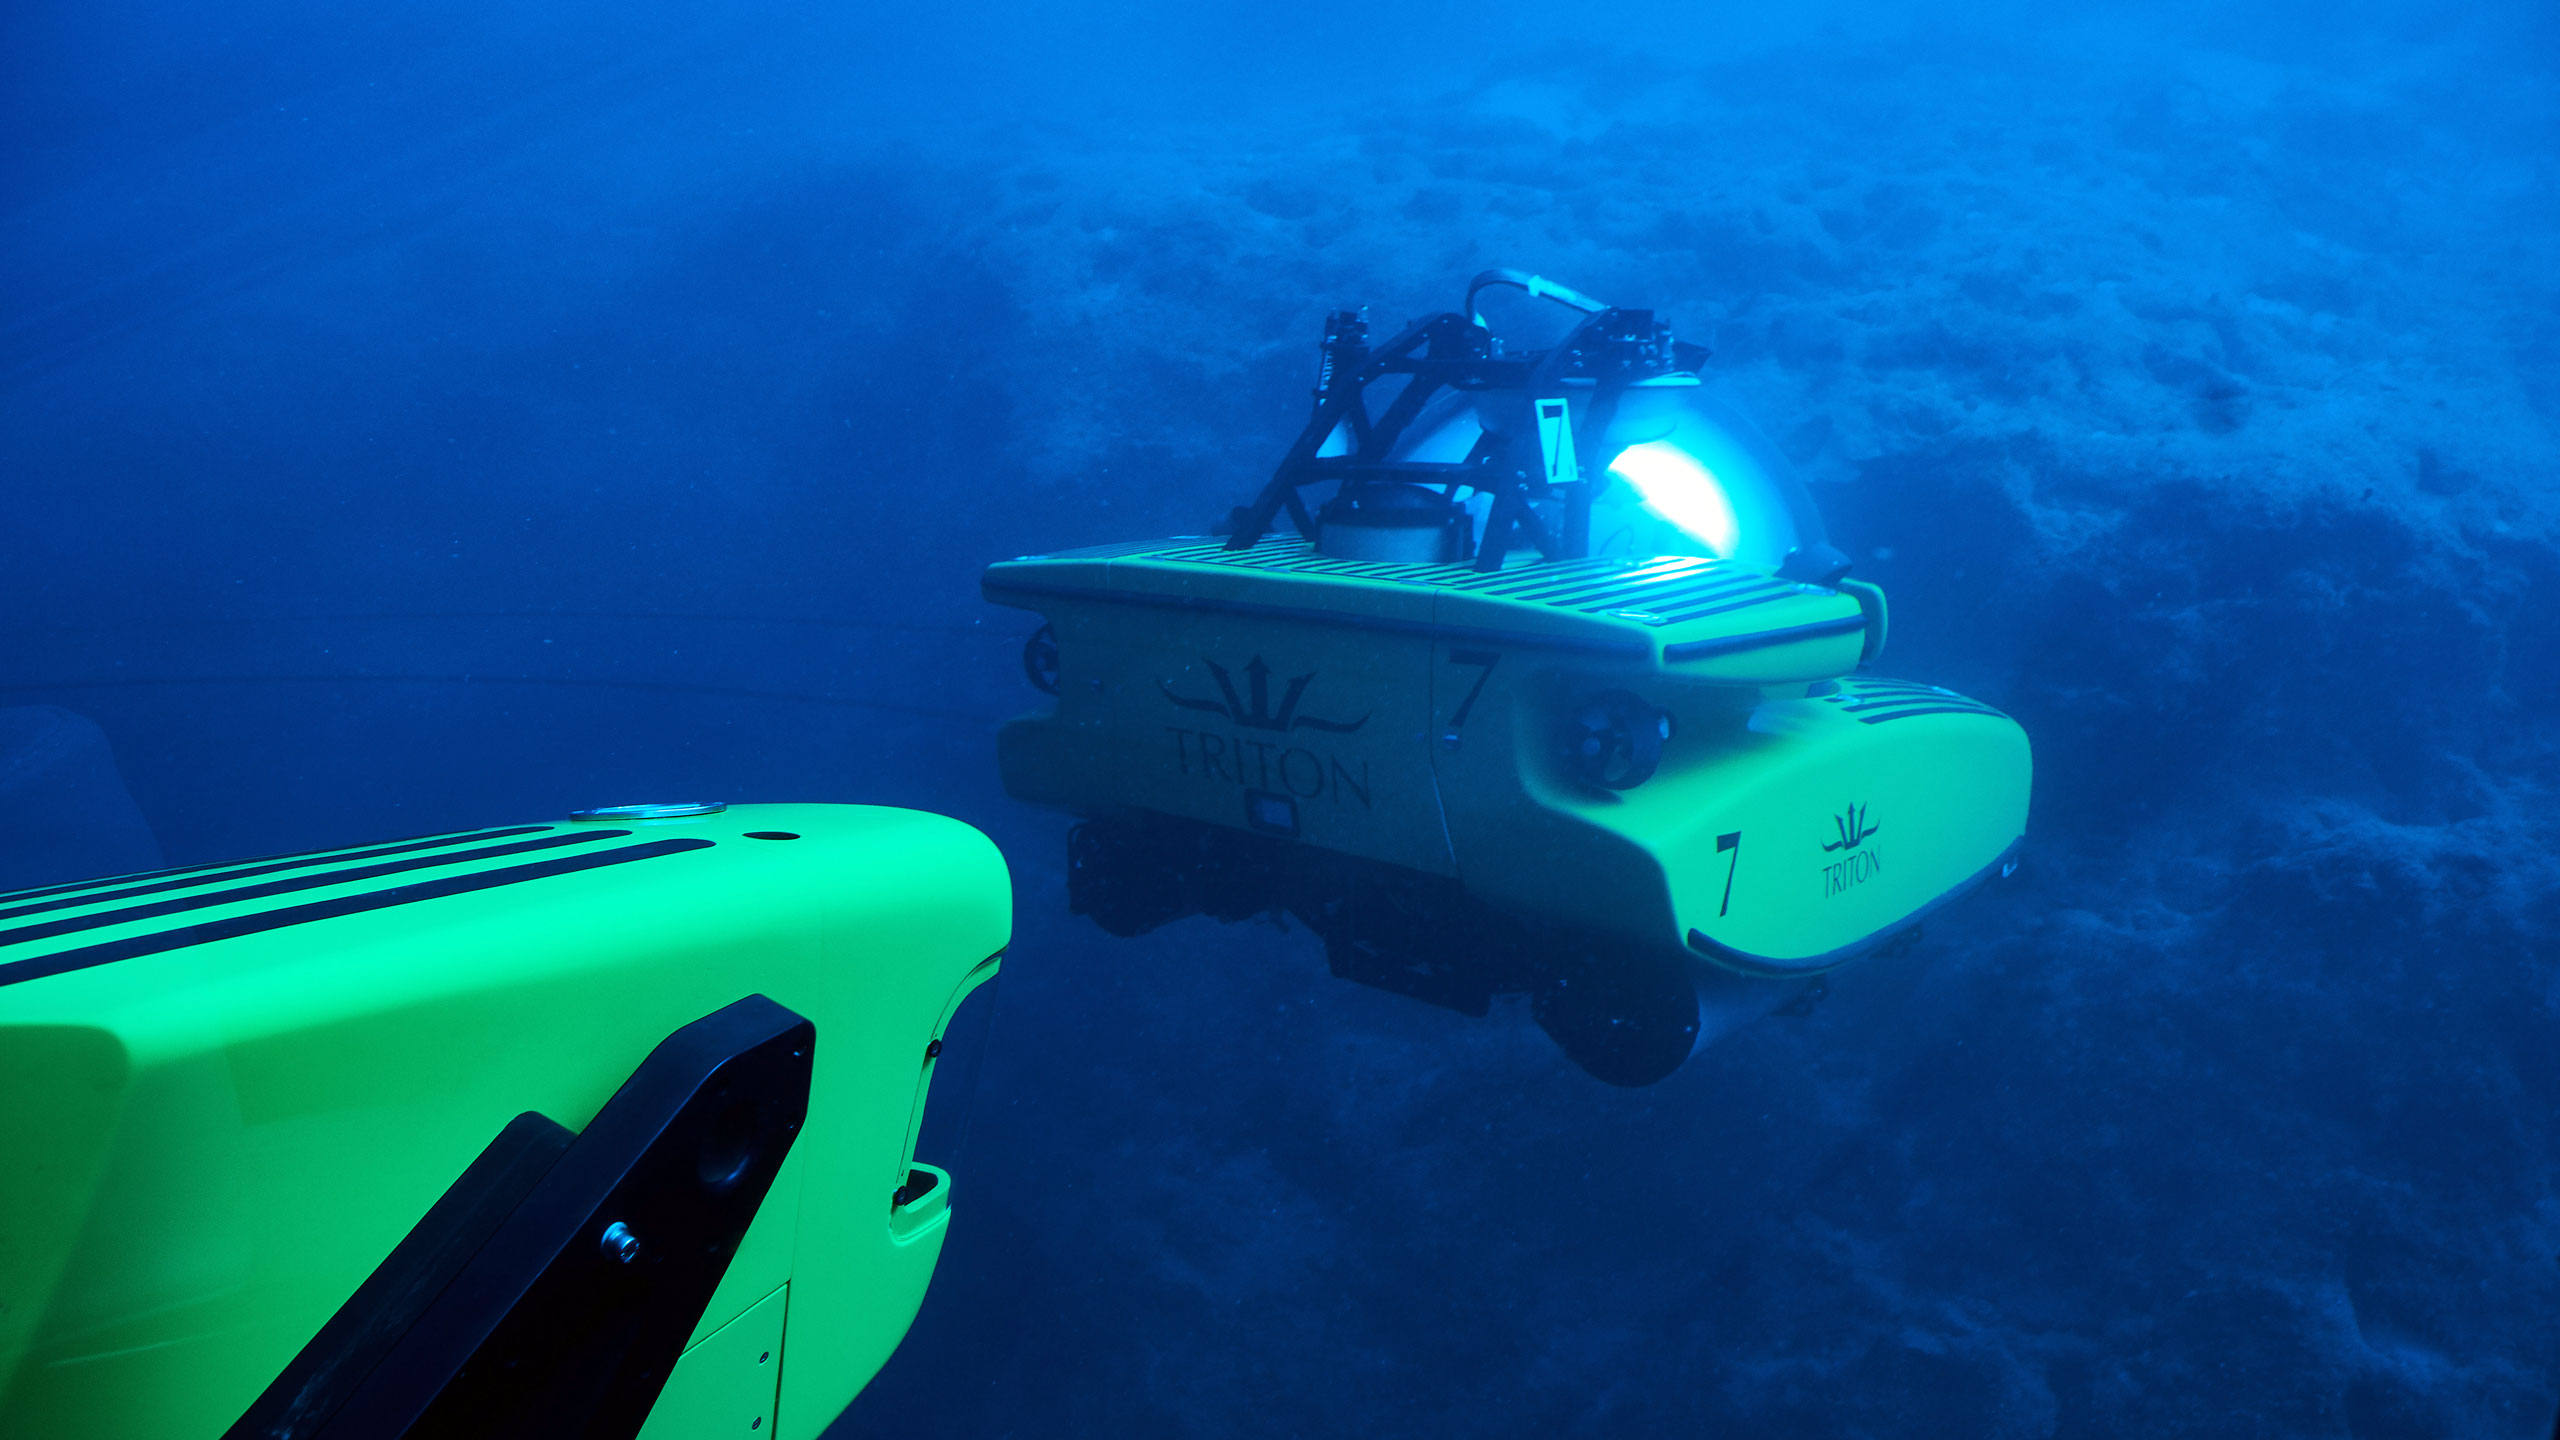 A pair of Triton submersibles on a dive